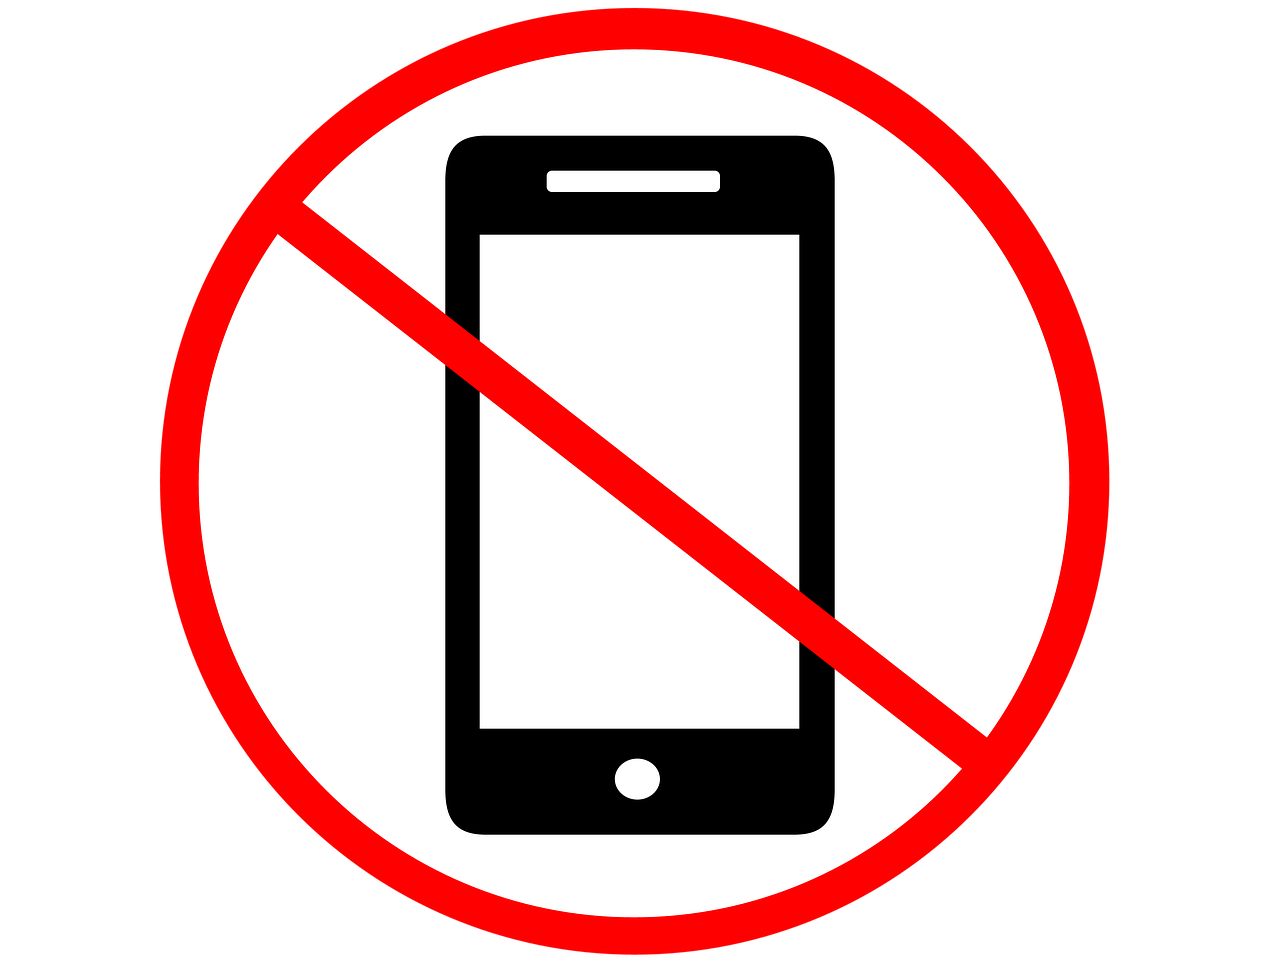 mobile phones should be prohibited in Should cell phones be banned from colleges update cancel ad by grammarly write with confidence should mobile phones be banned in schools, colleges and offices.